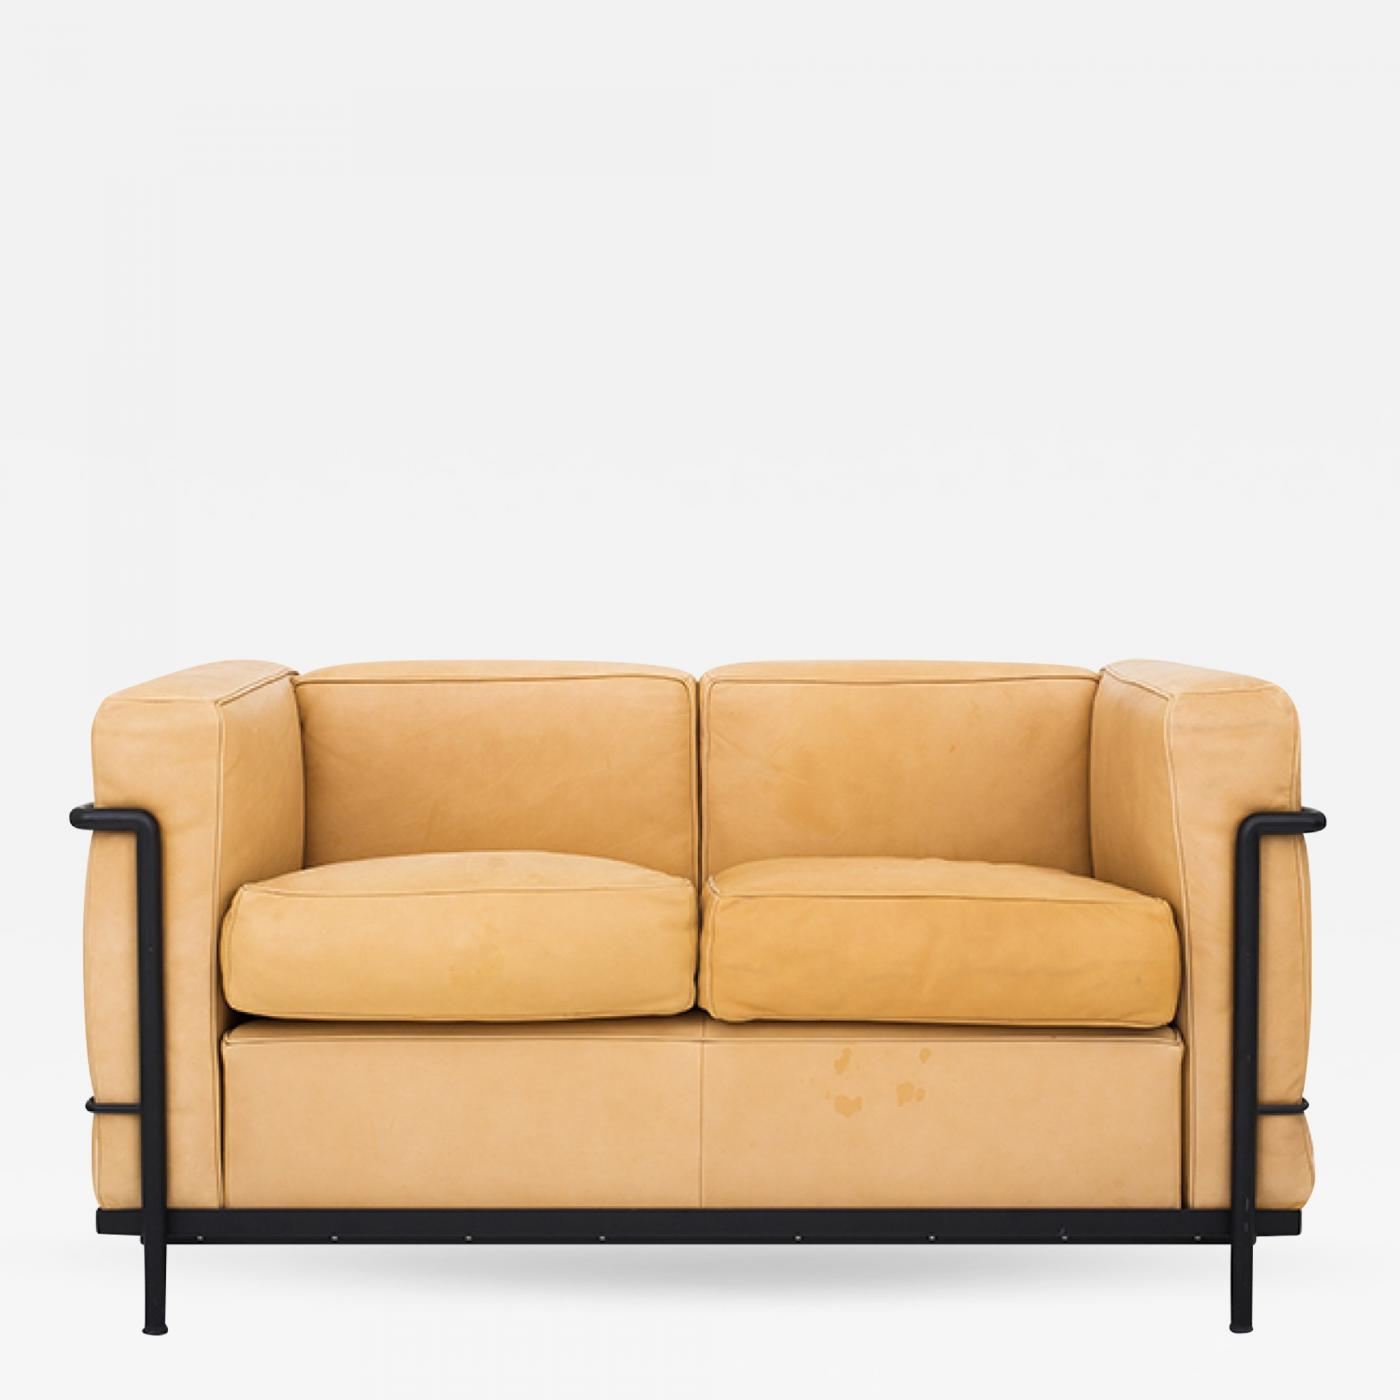 Le Corbusier - LC 2 - 2 Seater Sofa